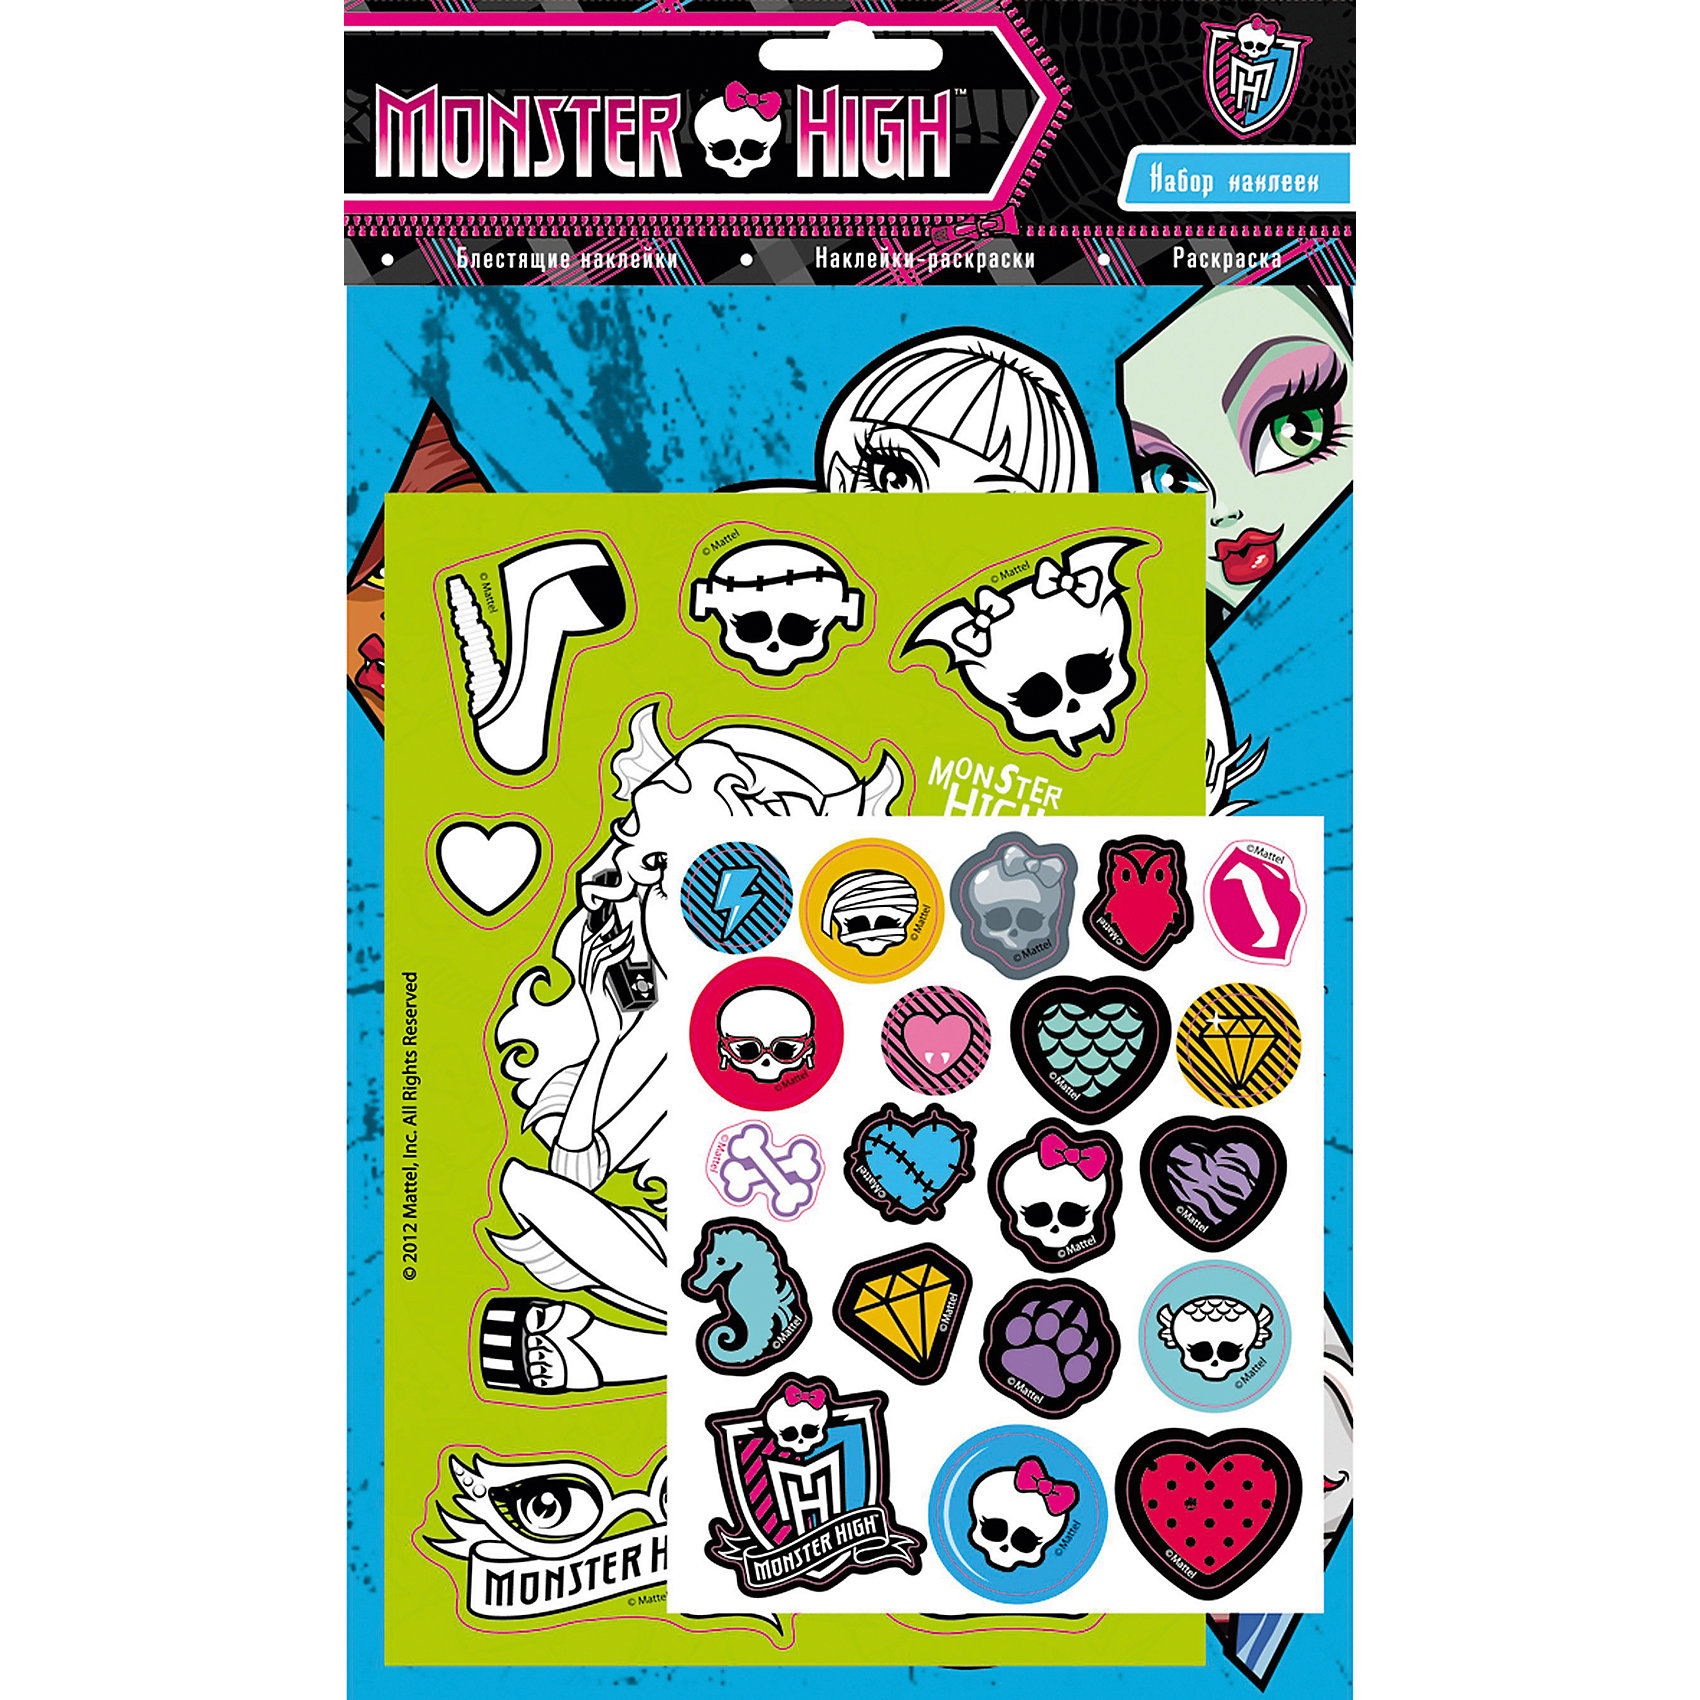 Росмэн Набор наклеек 1, Monster High monster high коллекция наклеек